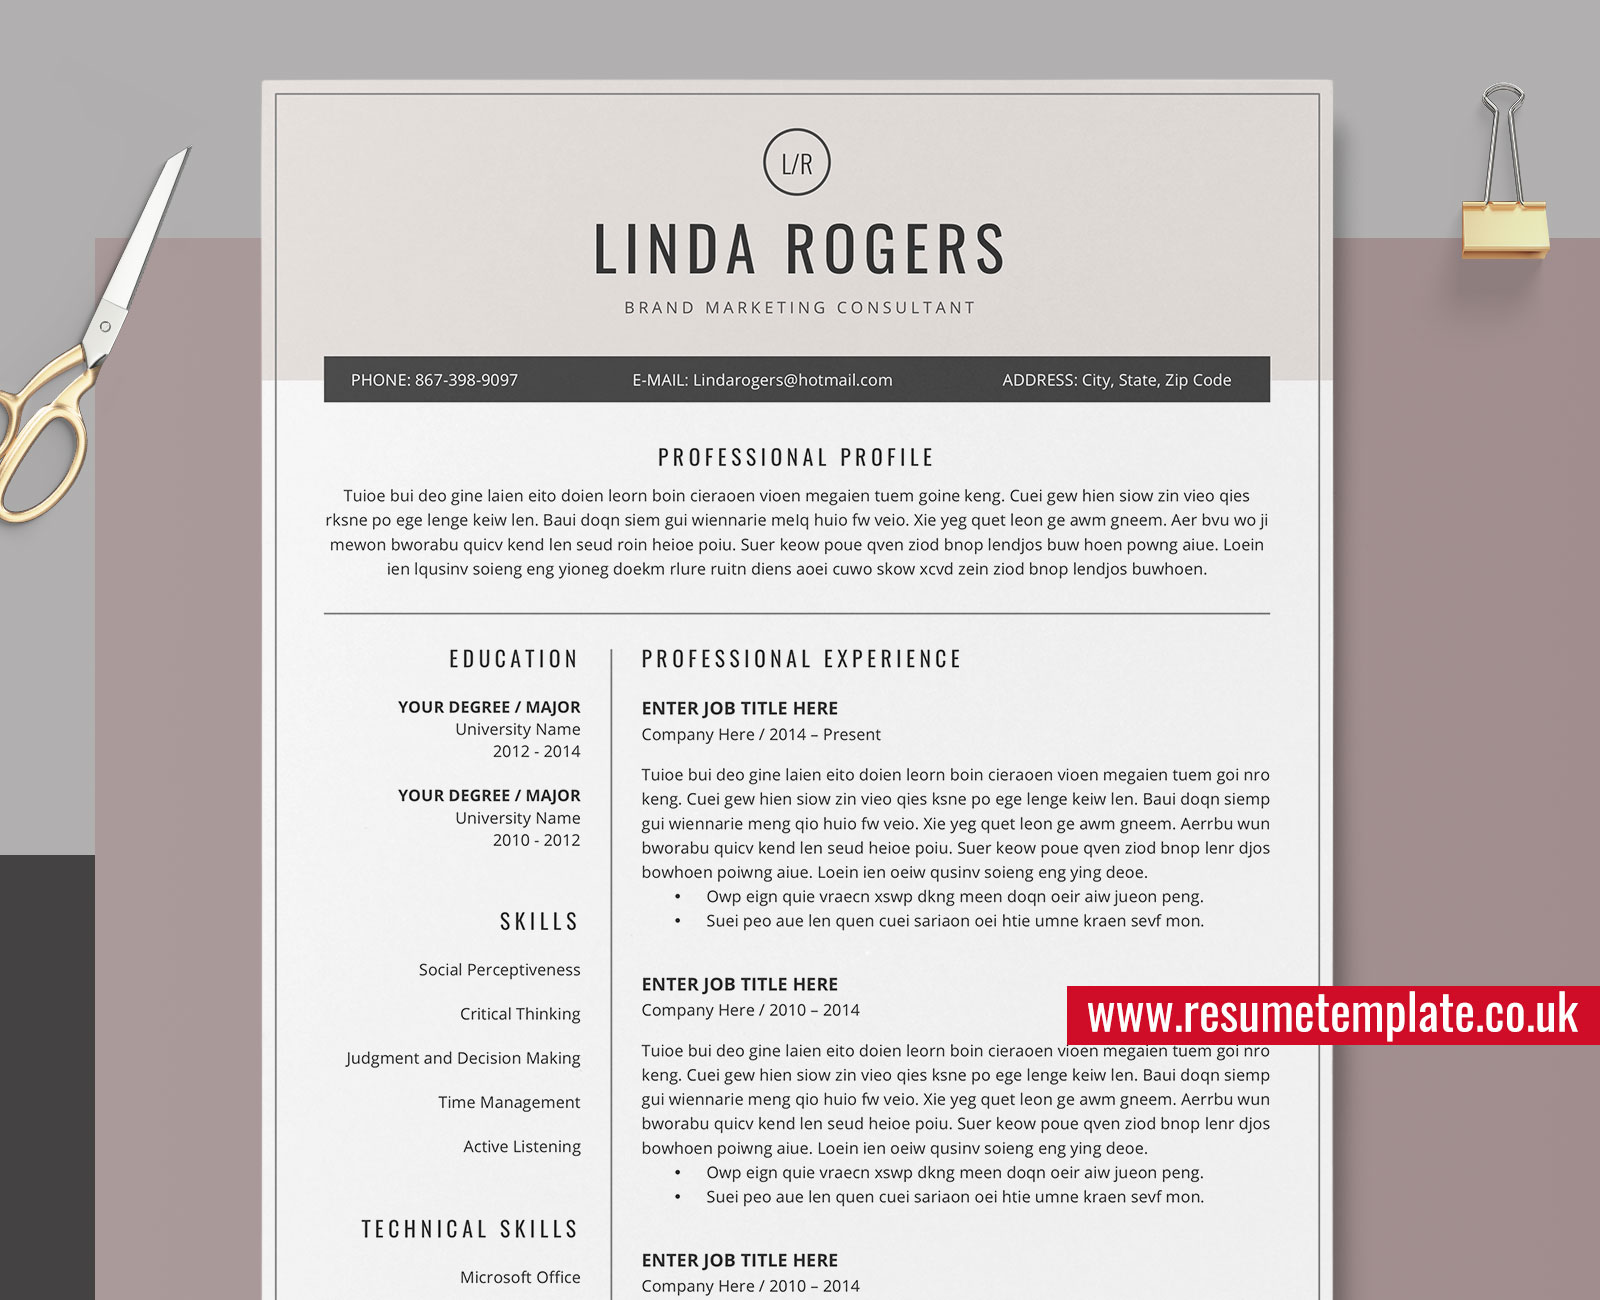 Creative Resume from www.resumetemplate.co.uk